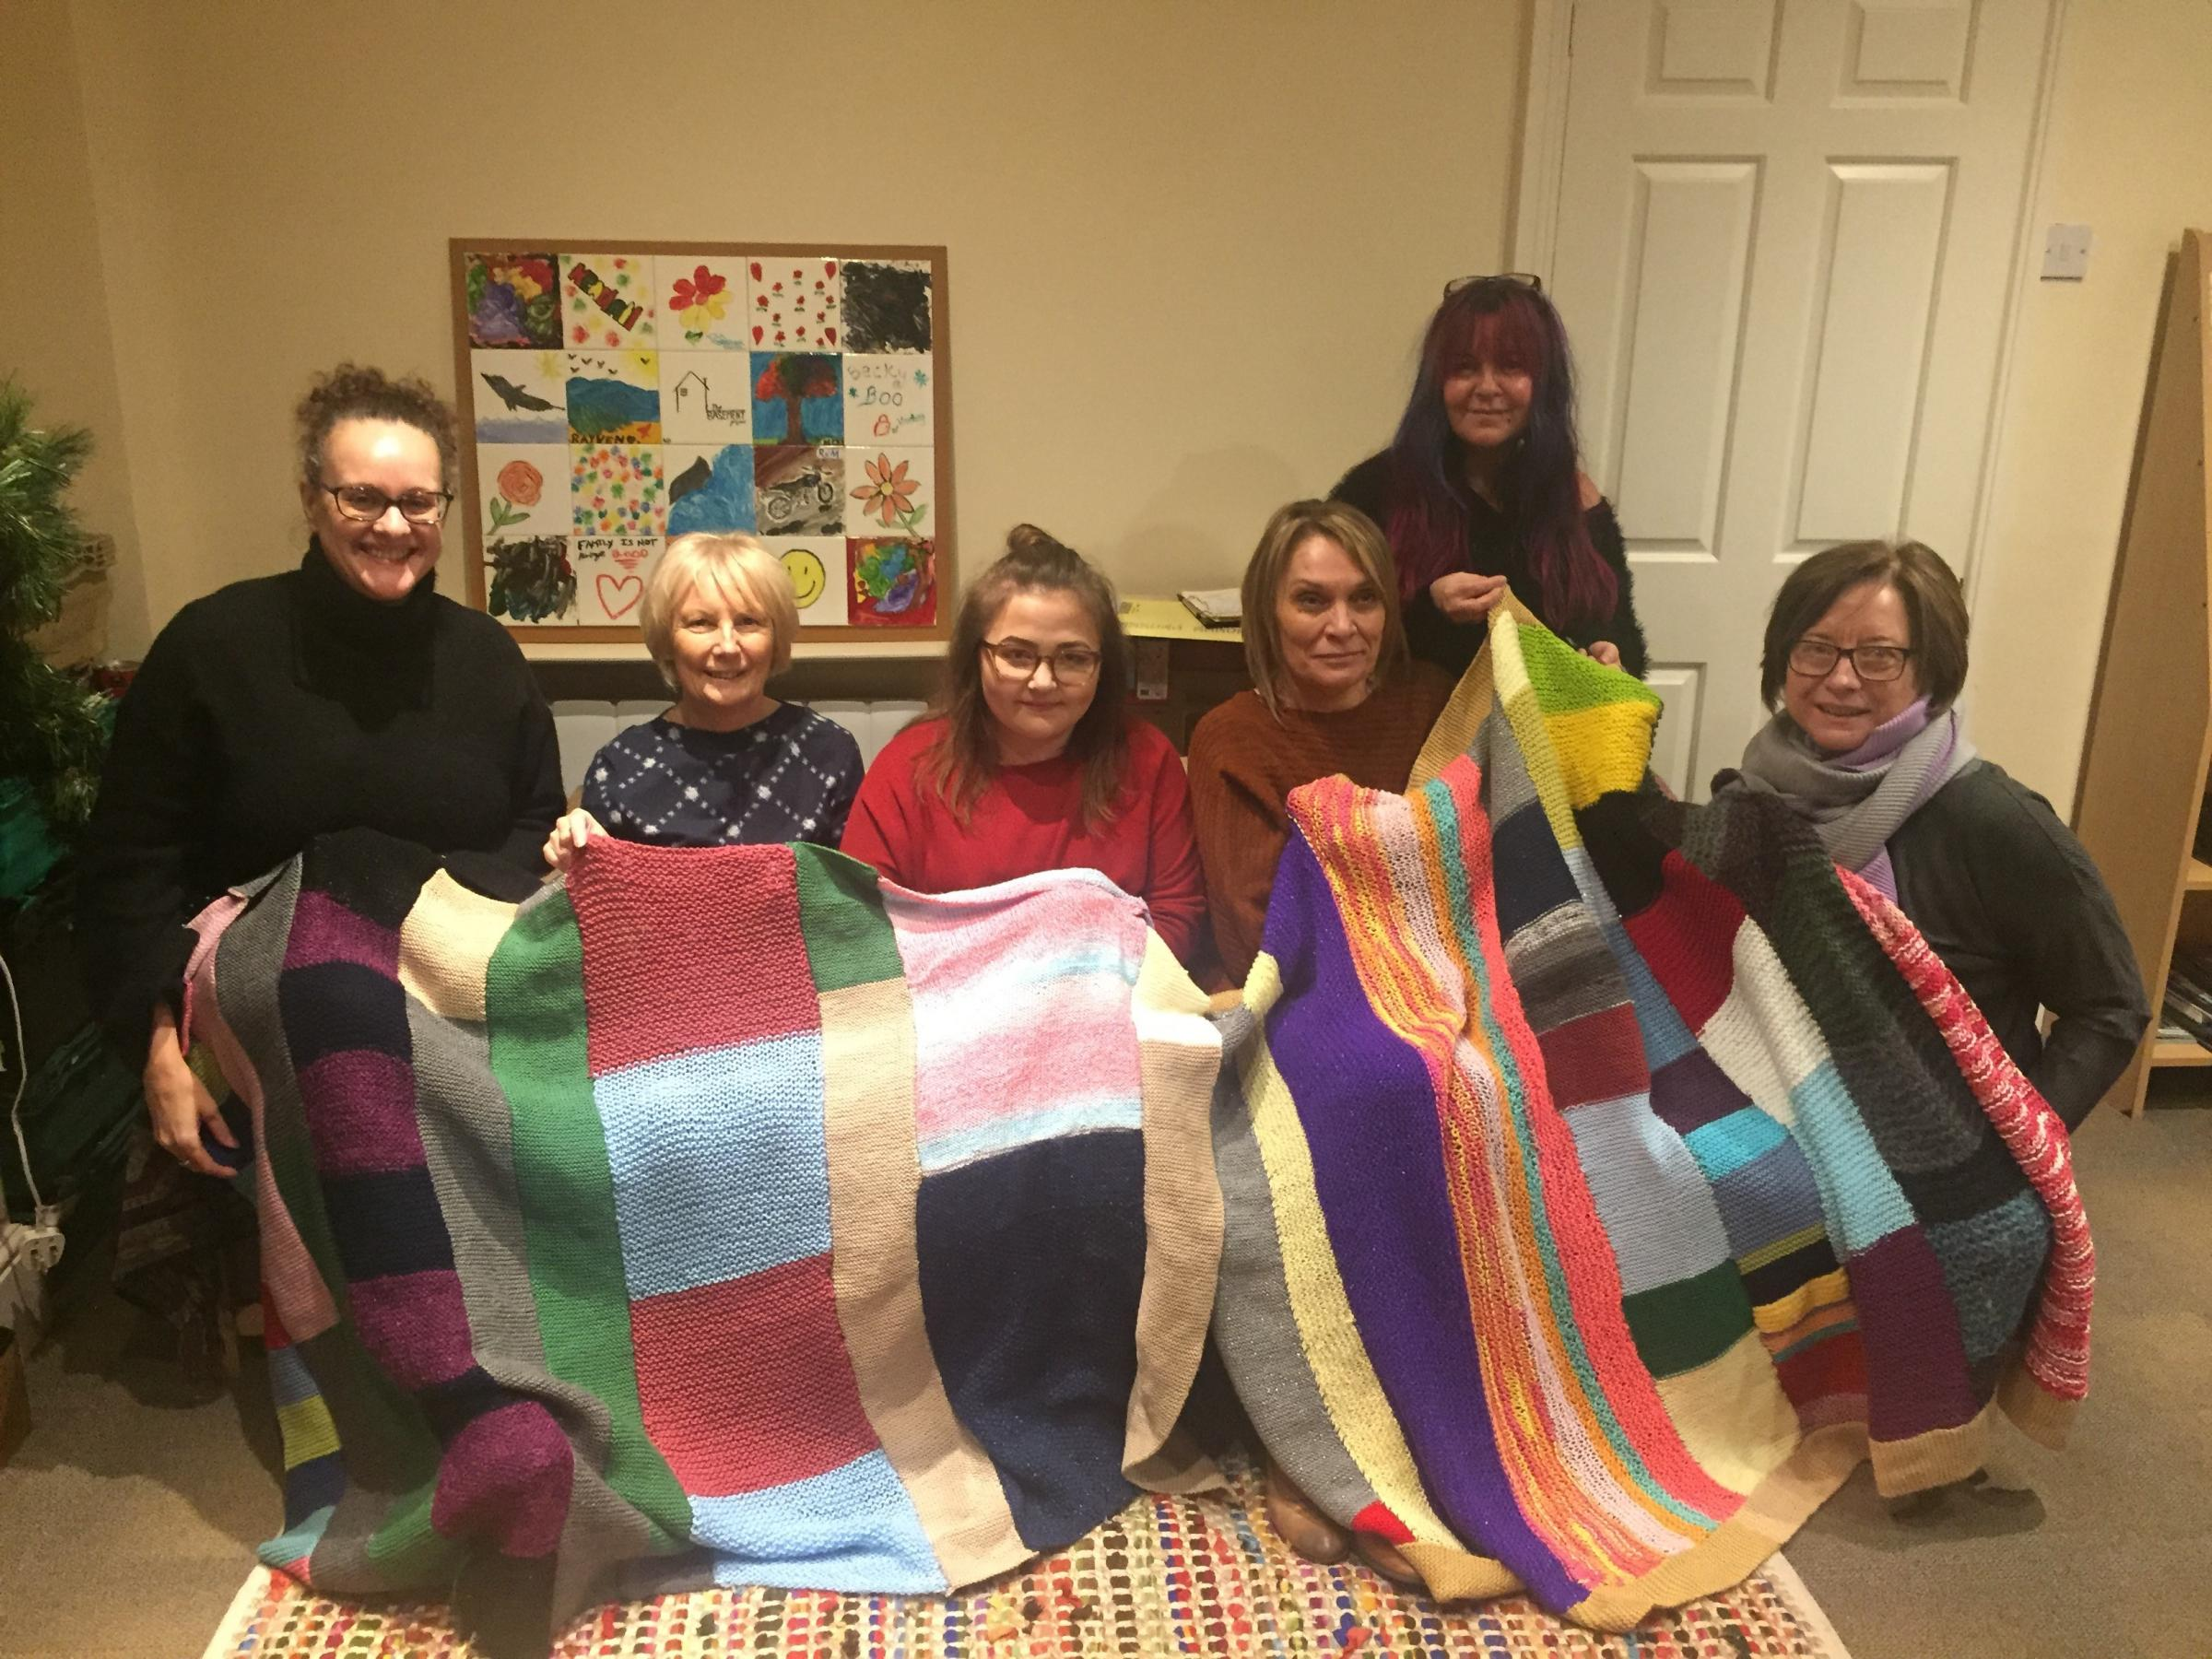 The blankets which were knitted by the foster children at FCA